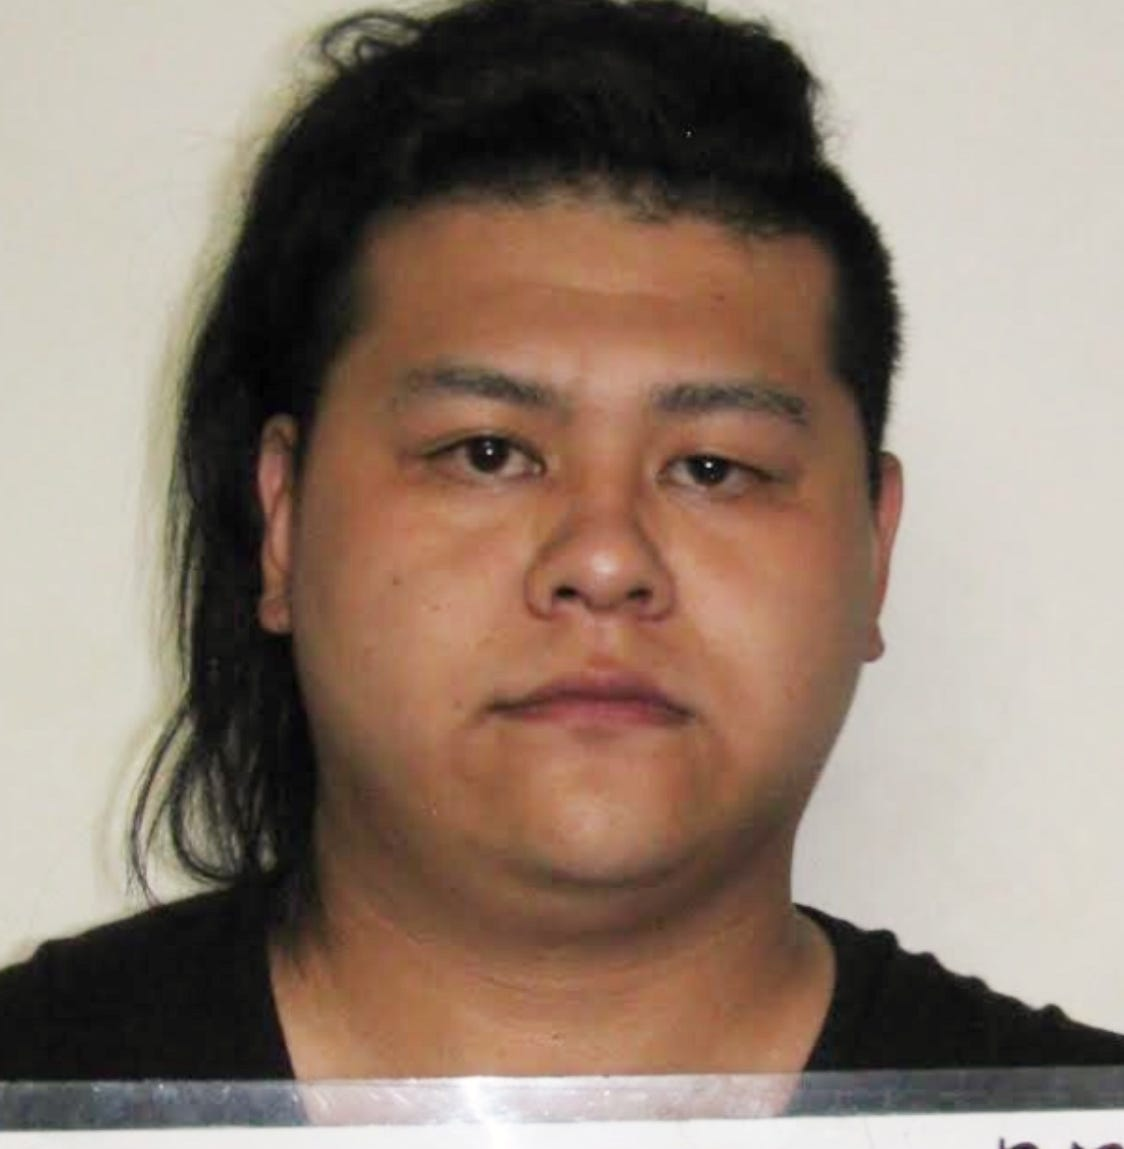 Zhaoxin Fan, wanted in Nevada on drug charges, arrested on Guam